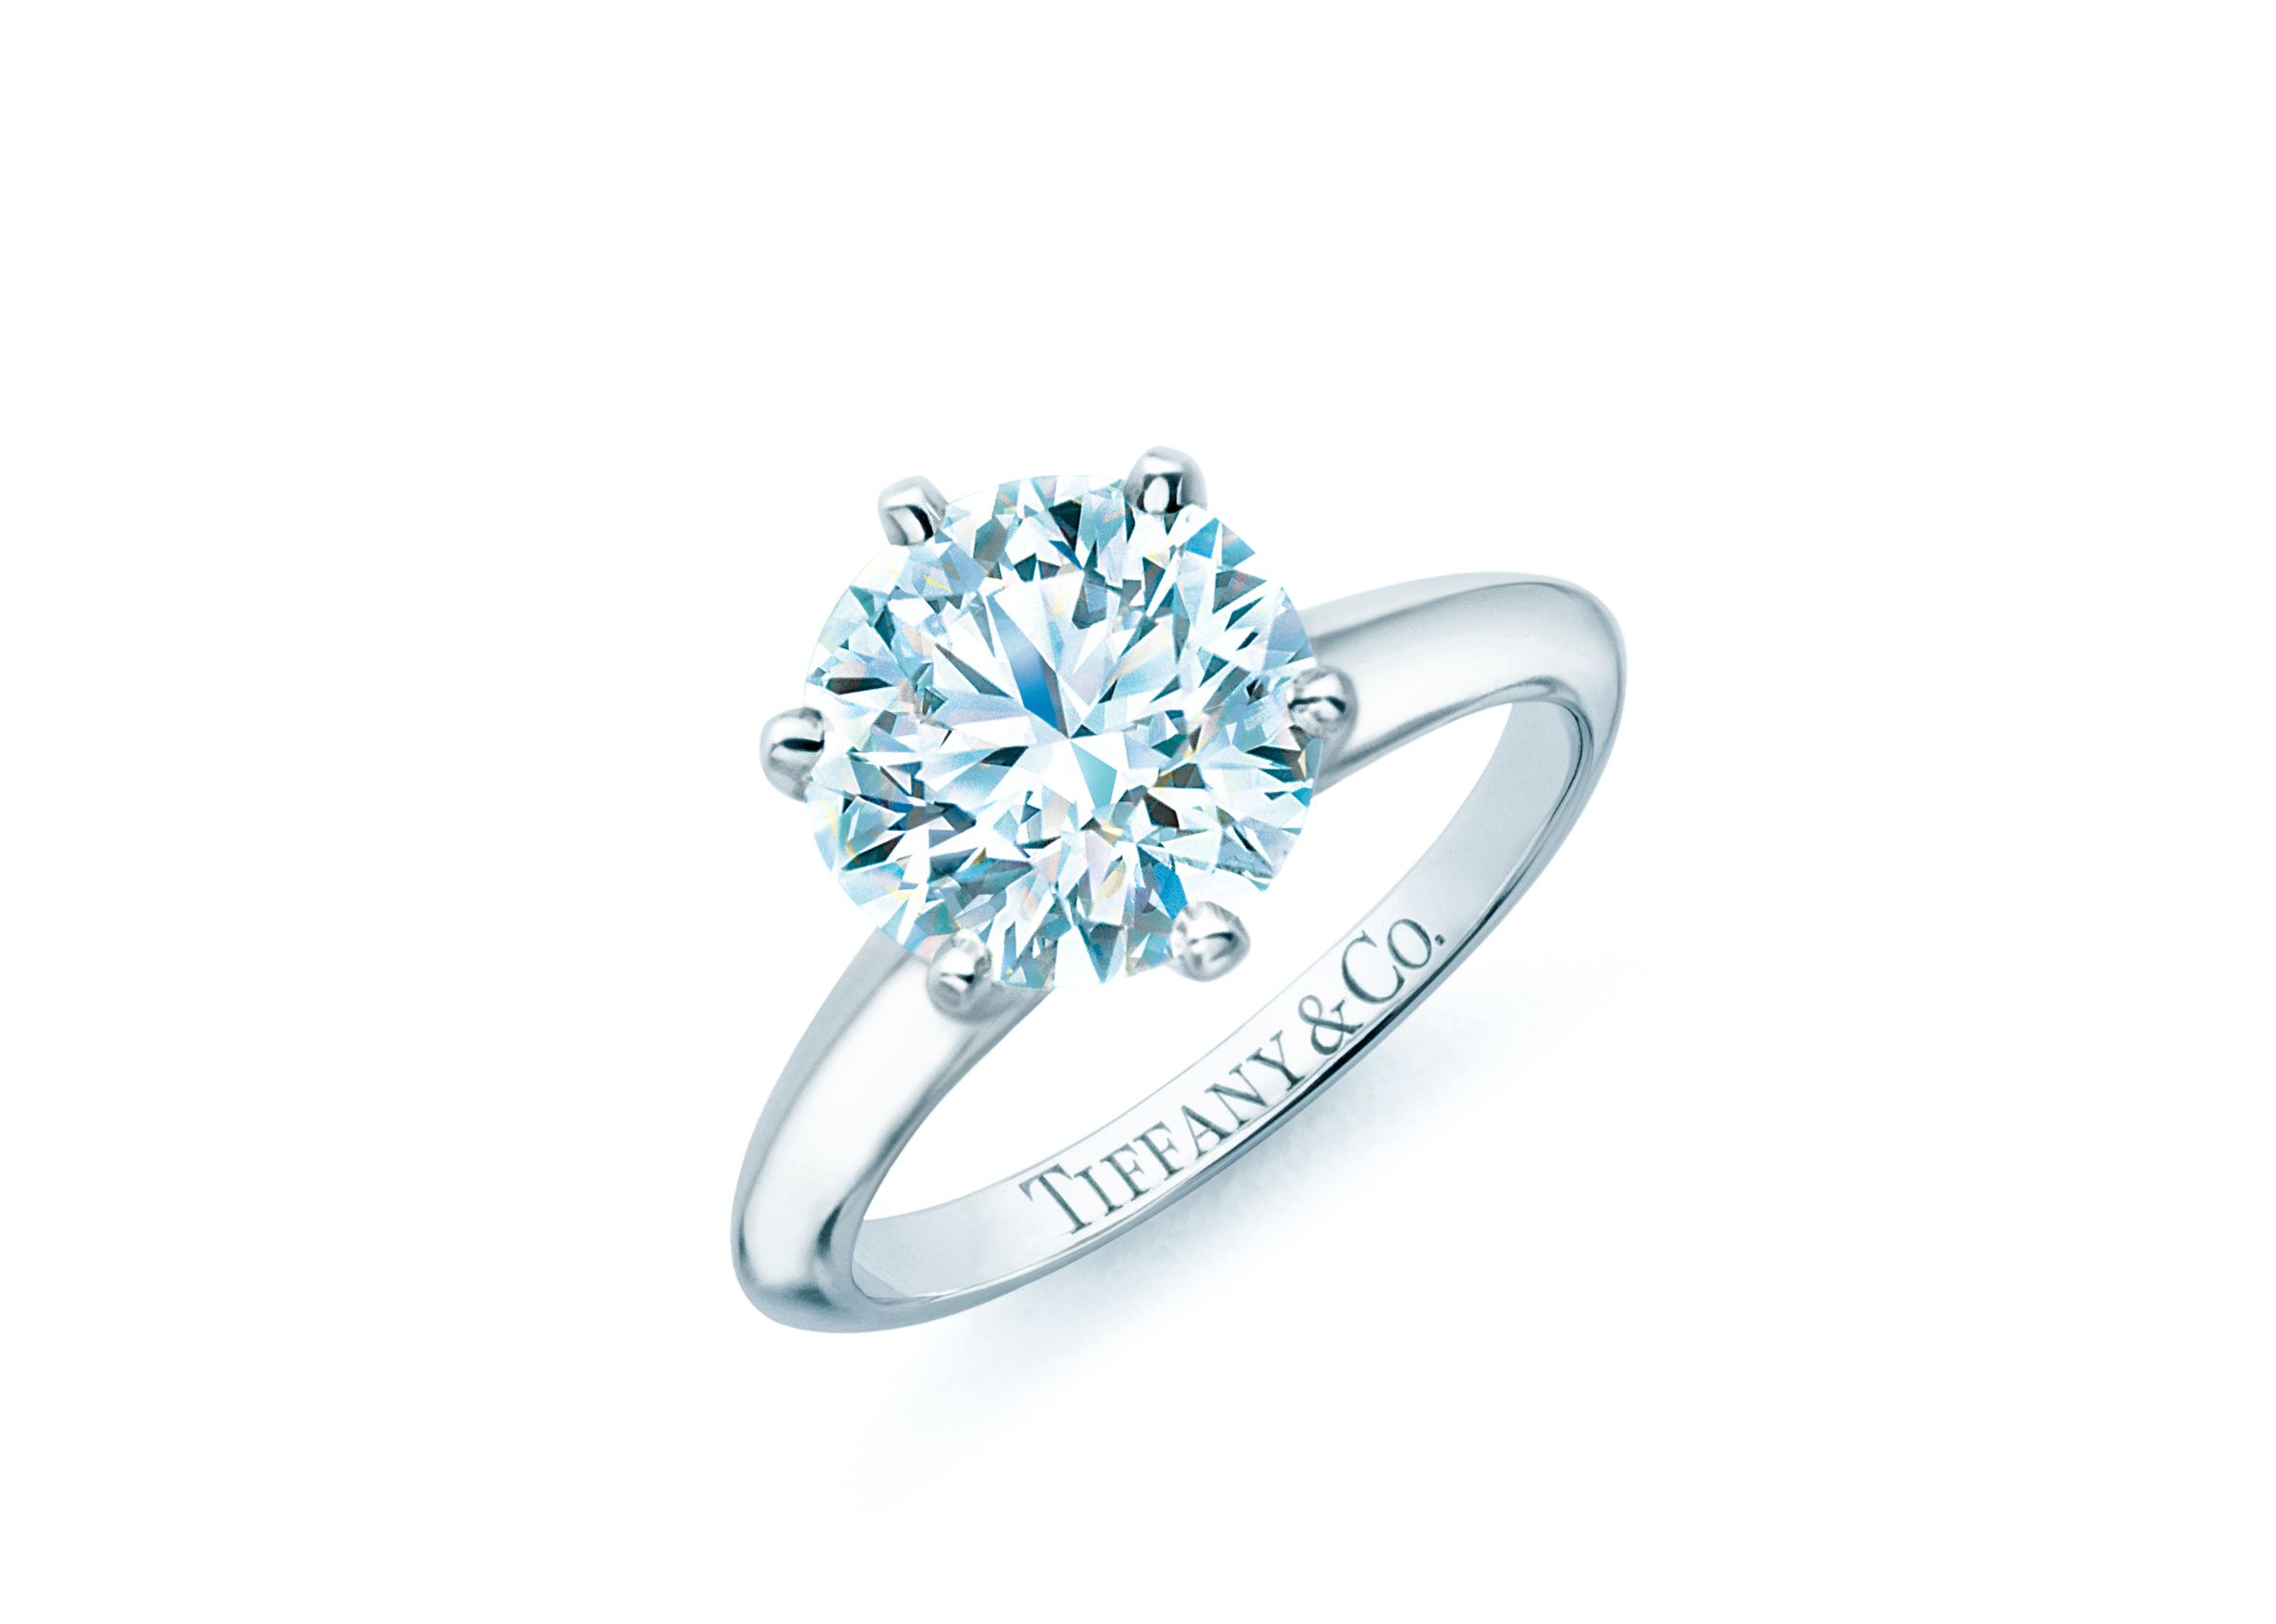 h detail tiffany engagement index rings diamond style mrdtiffanysolitaireside i solitaire round